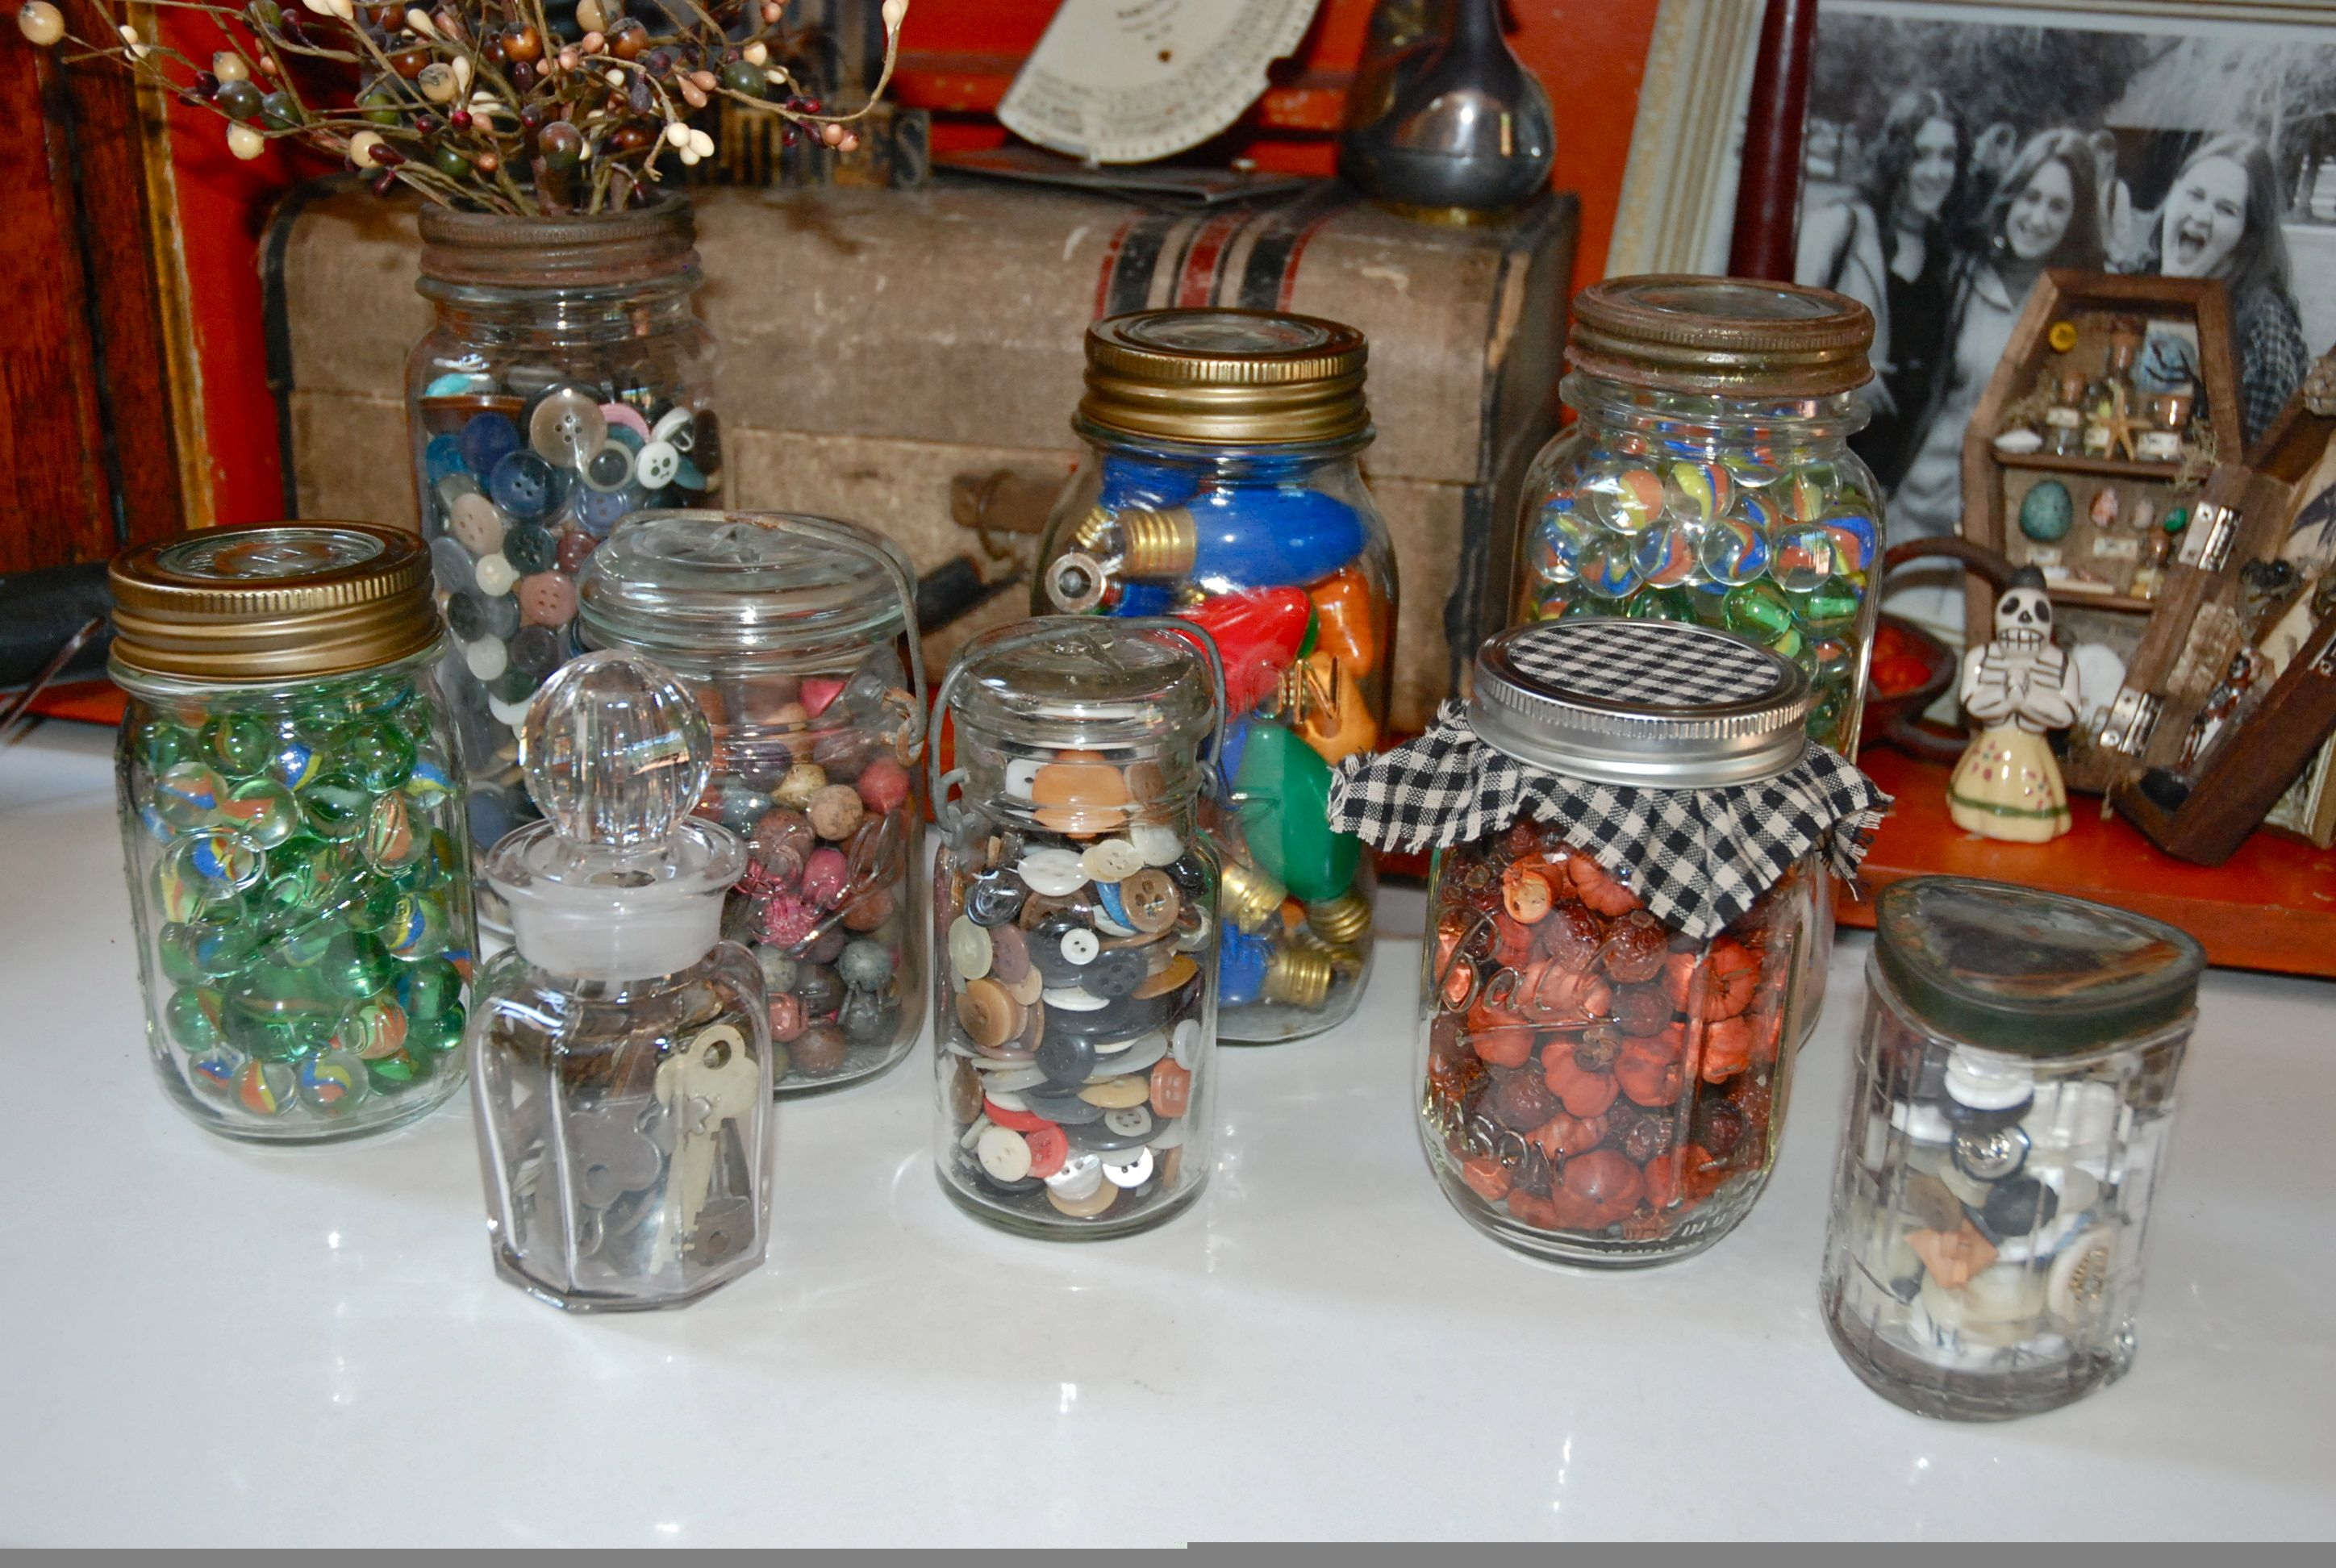 Easy Country Decor Ideas Filling Old Jars Eyeballs By Decor Decorating Coffee Tables Decoracion De Interiores In 2020 Country Christmas Crafts Jar Fillers Jar